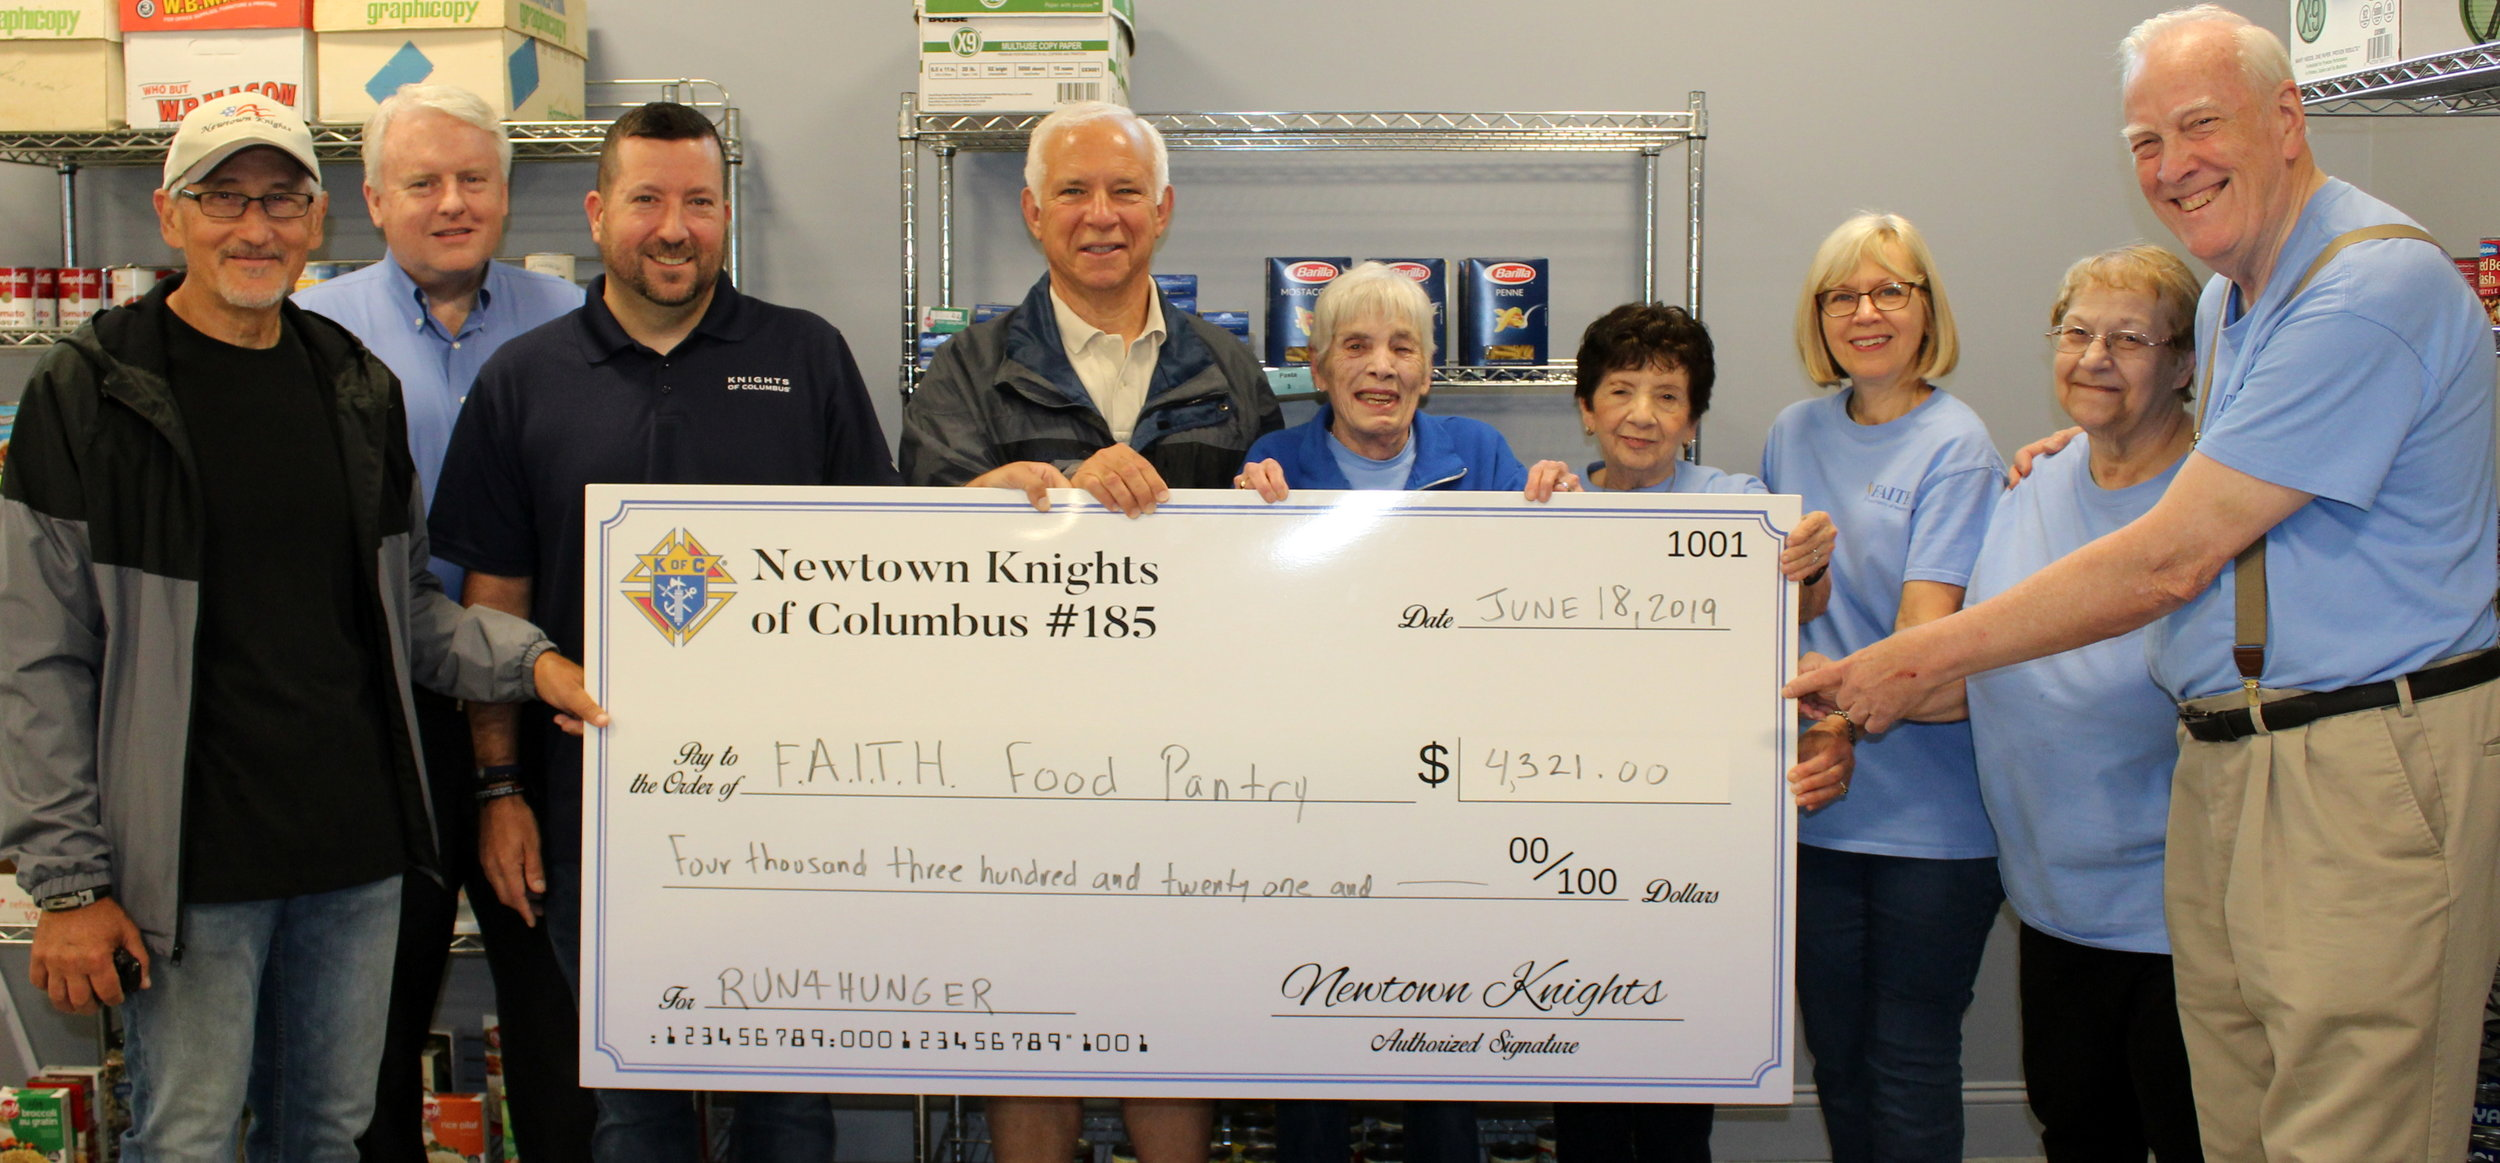 The Newtown Knights were able to officially present a check to the  FAITH Food Pantry  with all of the funds raised from the Run4Hunger-Newtown 5k race. We also were able to donate over 1,300 canned goods. Thank you to all those who participated and donated. We would not be able to do what we do without your help and generosity.  Also, a special thank you to  The Newtown Bee  for the well-written article:  click here